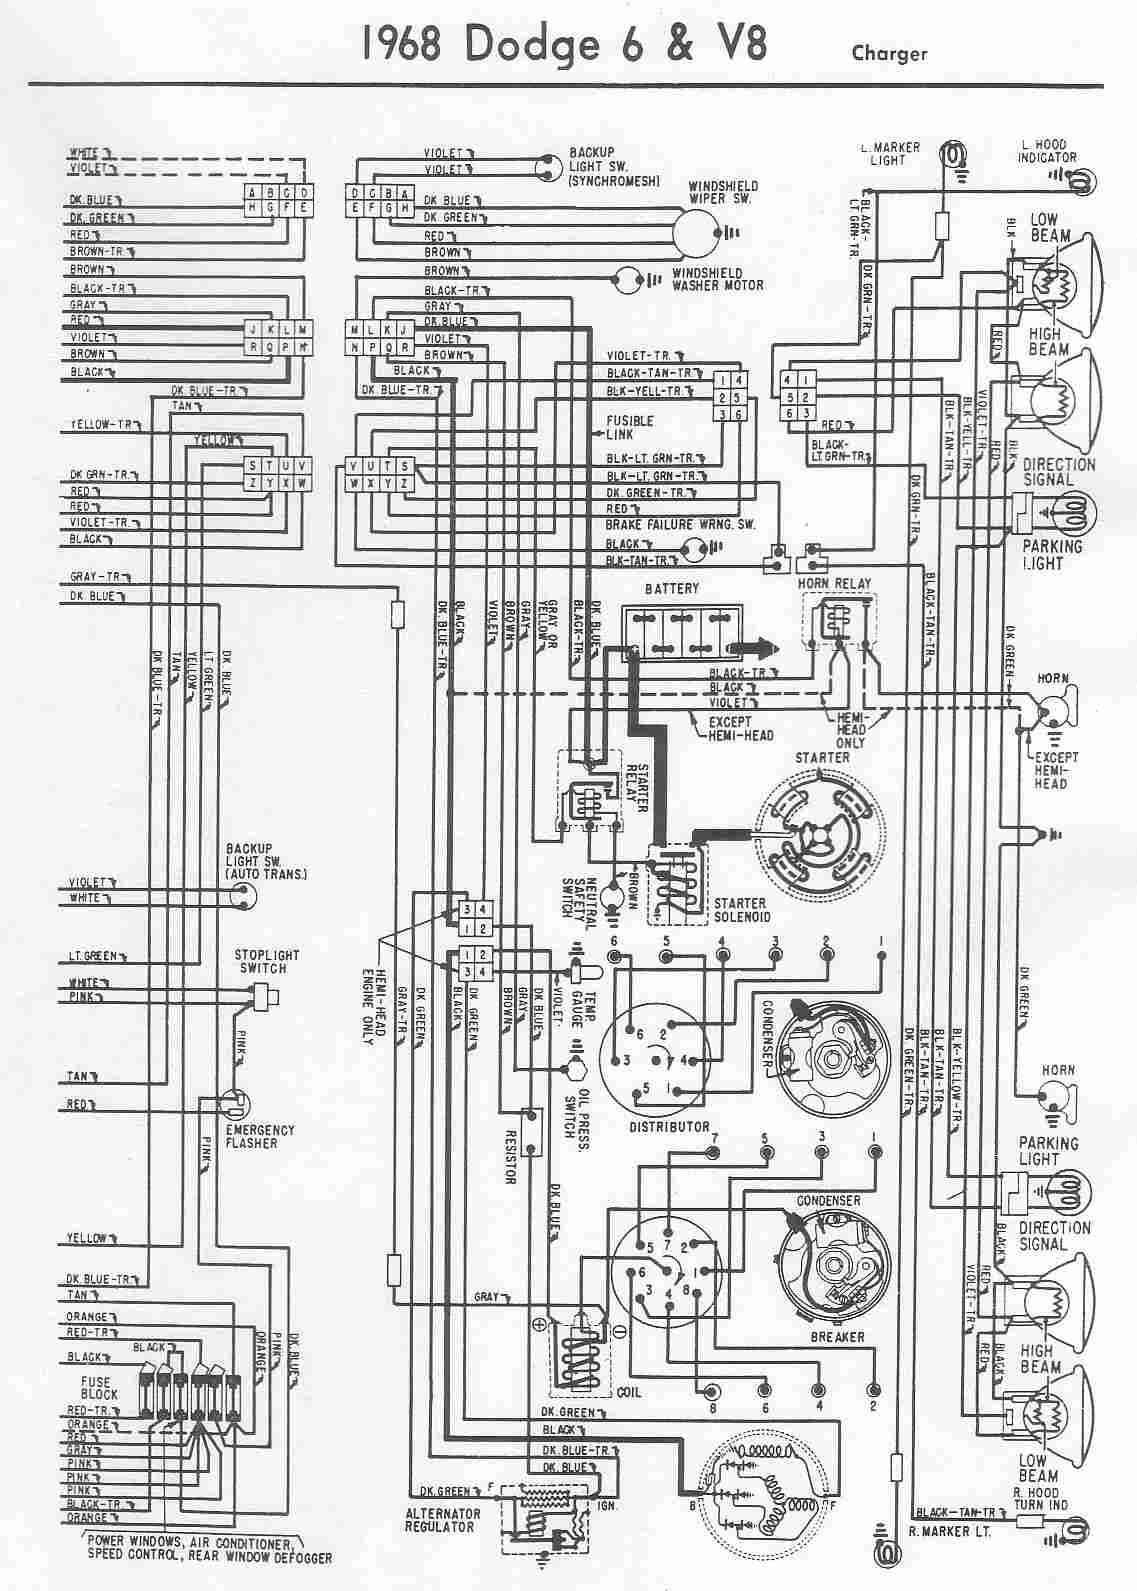 Dodge Car Manuals Wiring Diagrams Pdf Fault Codes 1992 Pontiac Grand Am Engine Diagram Schematic Download